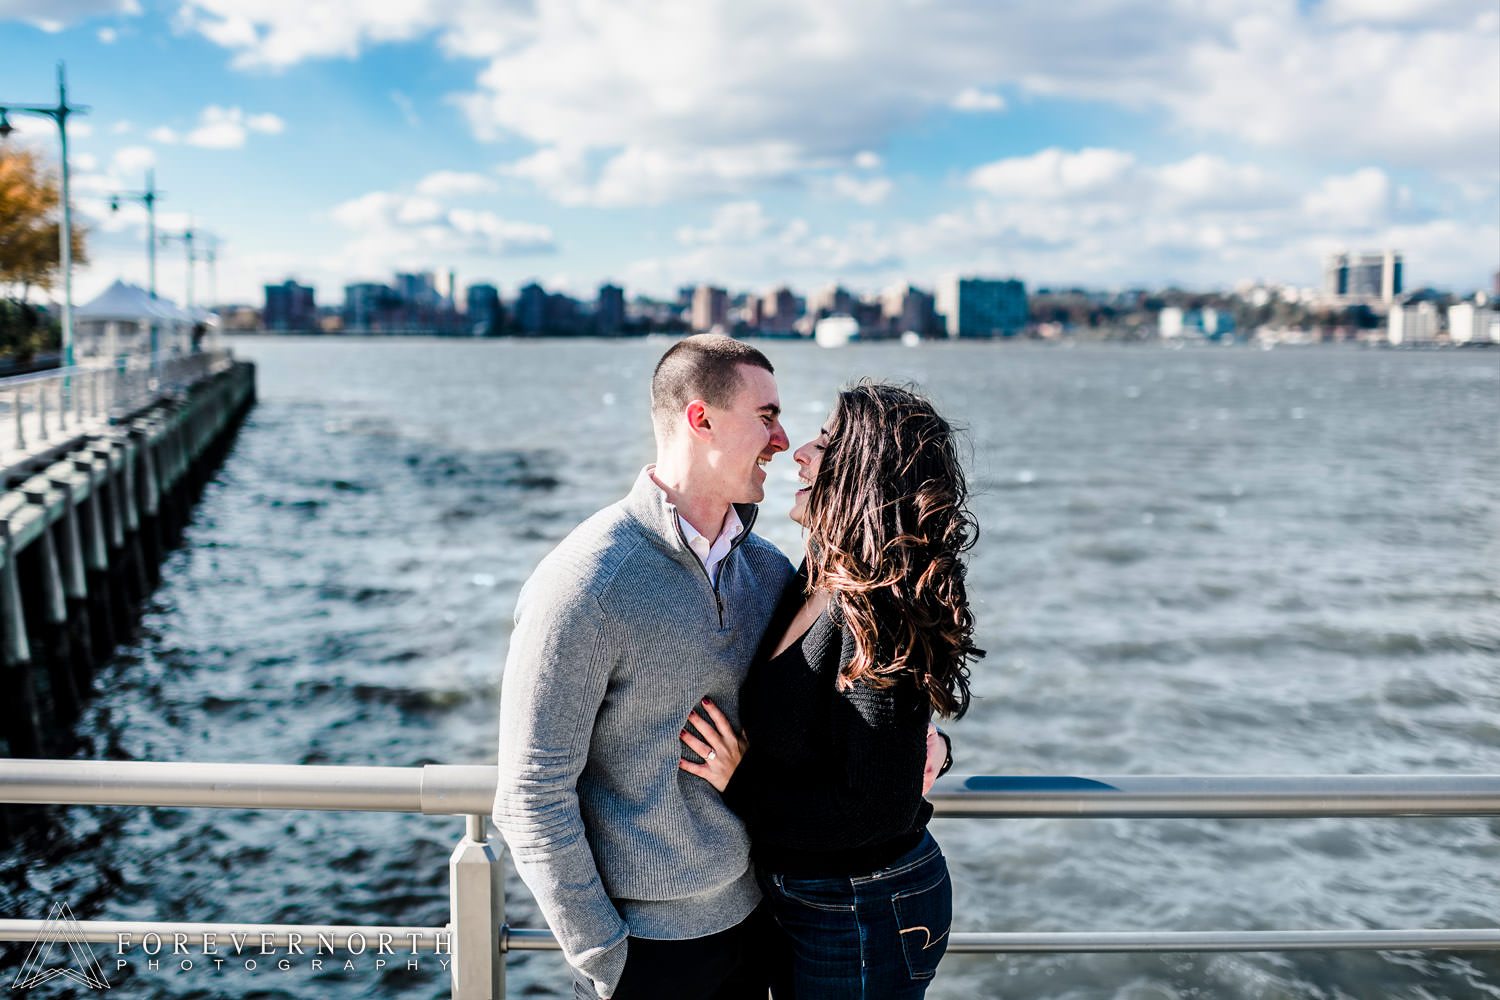 Cainero-Hudson-River-Park-Pier-62-New-York-Proposal-Engagement-Photographer-10.JPG